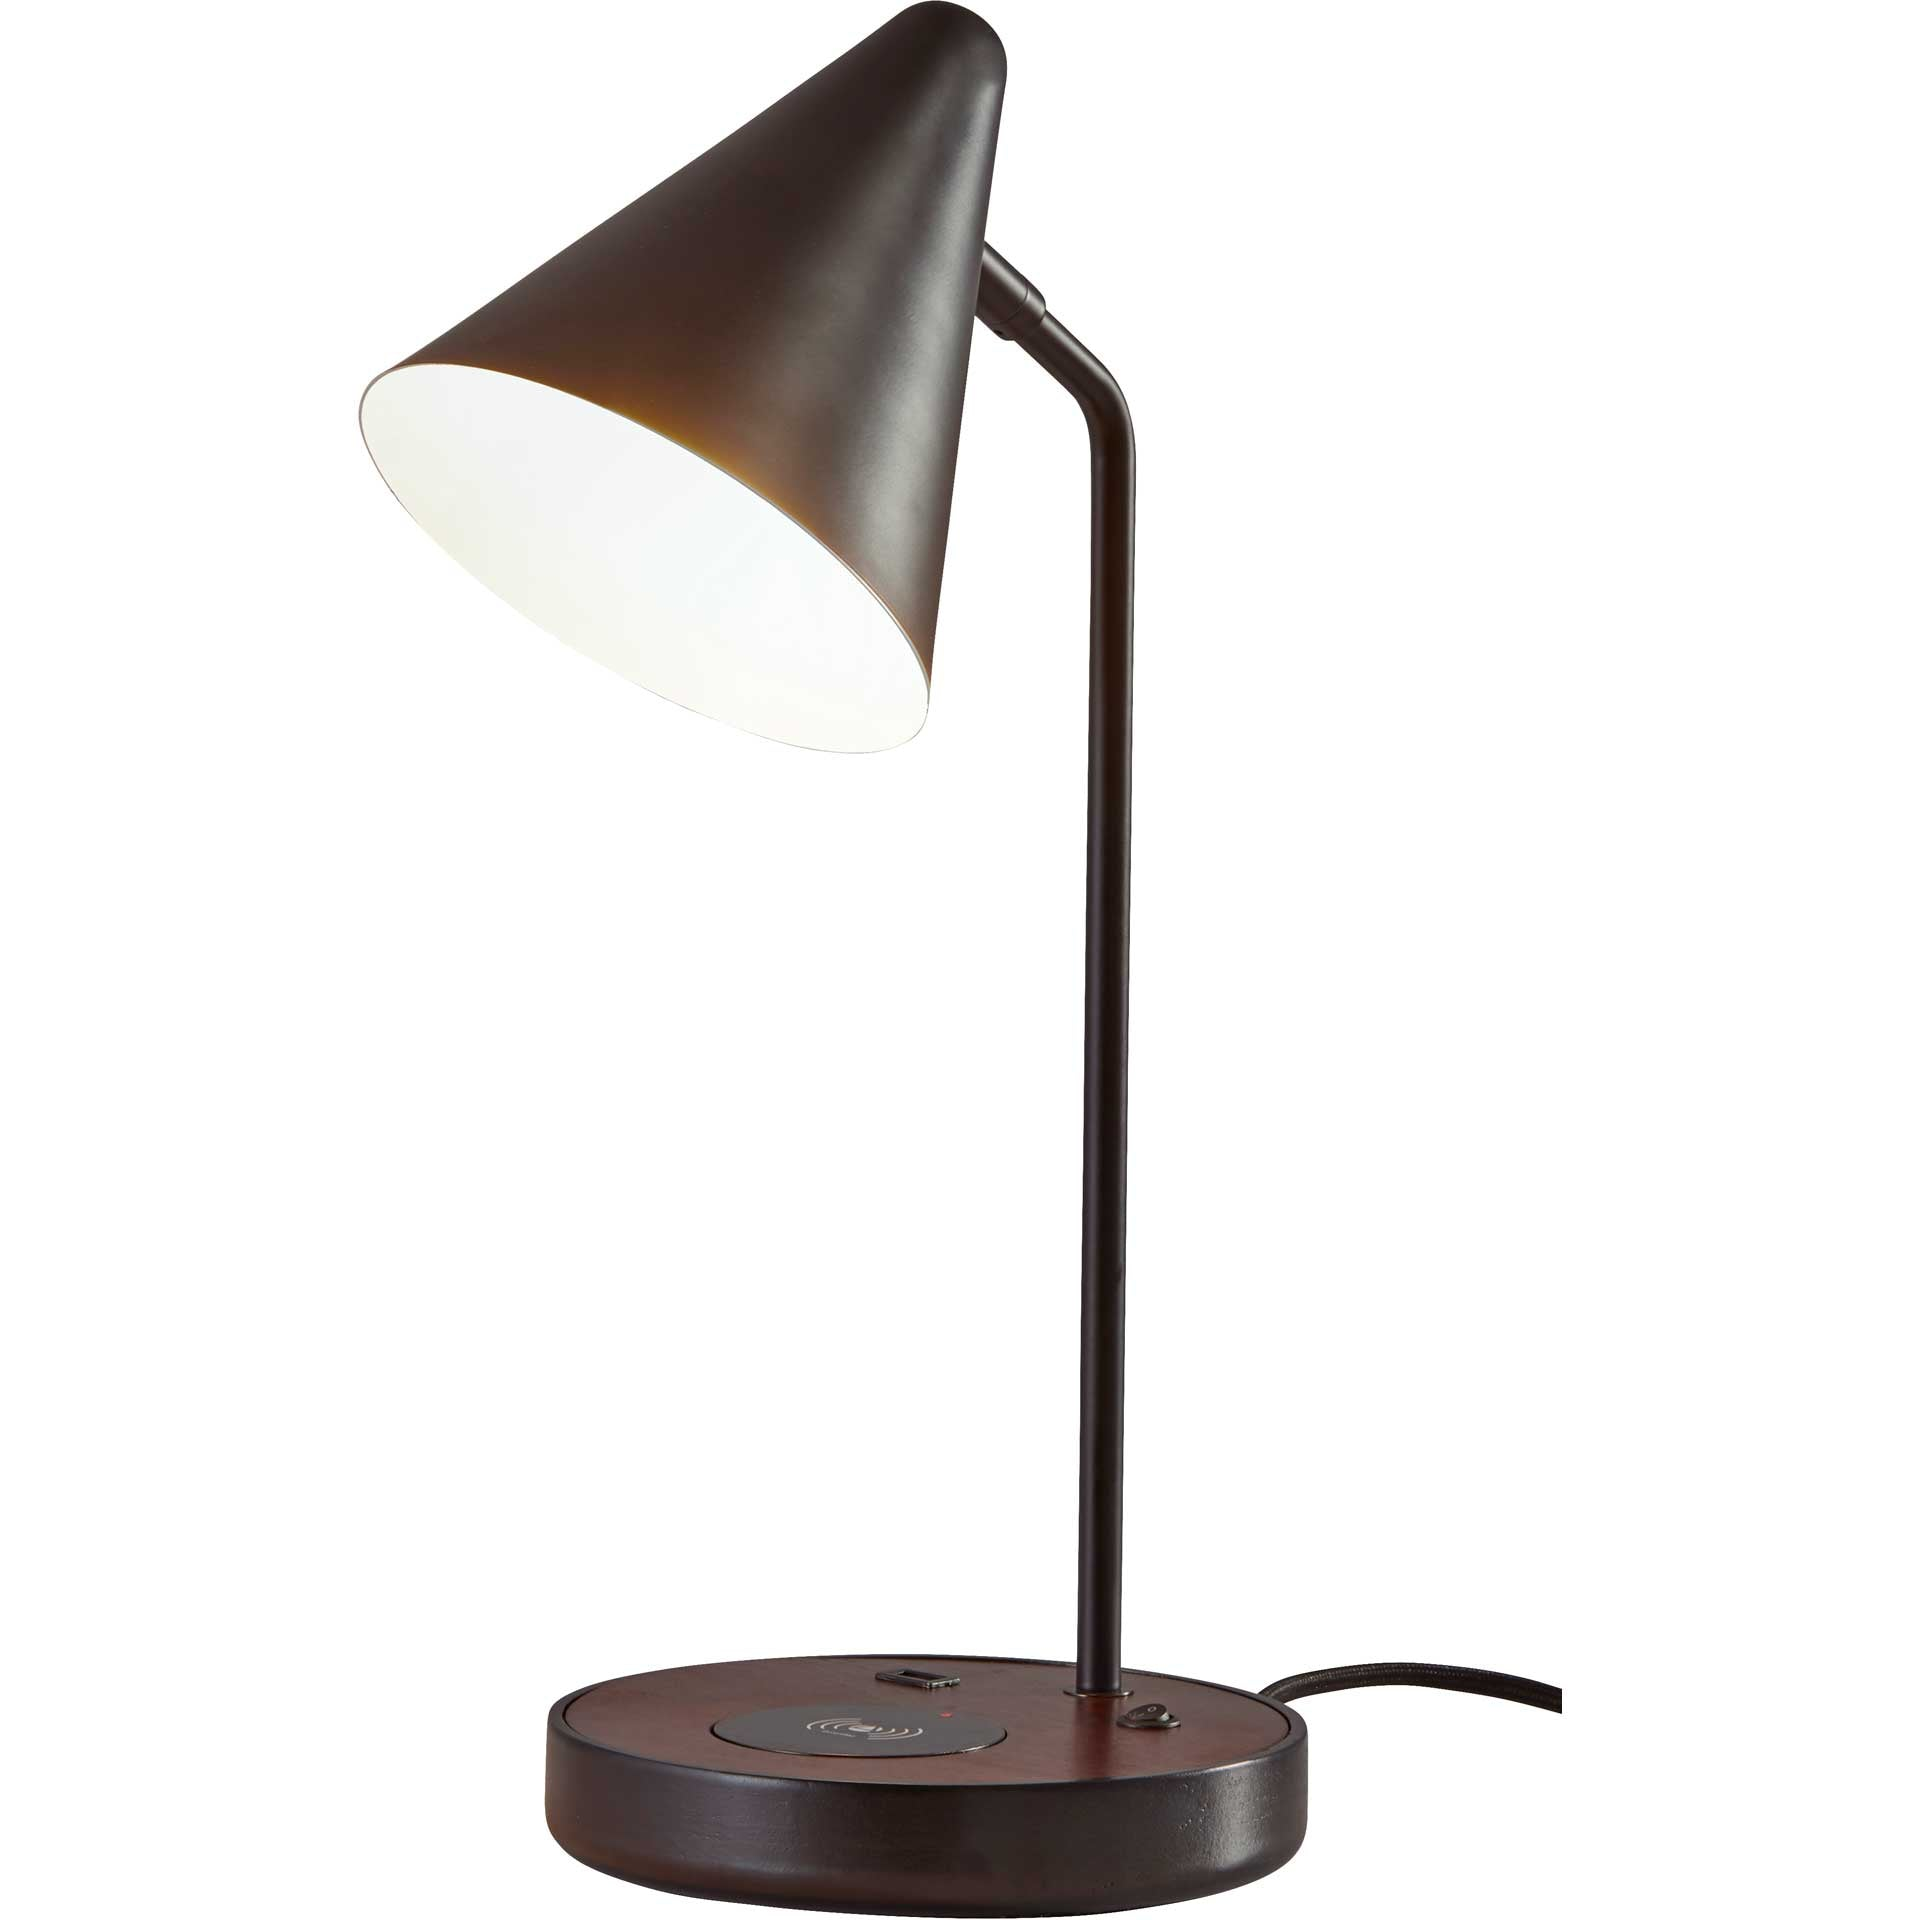 Orvault Wireless Charge Desk Lamp Black/Walnut